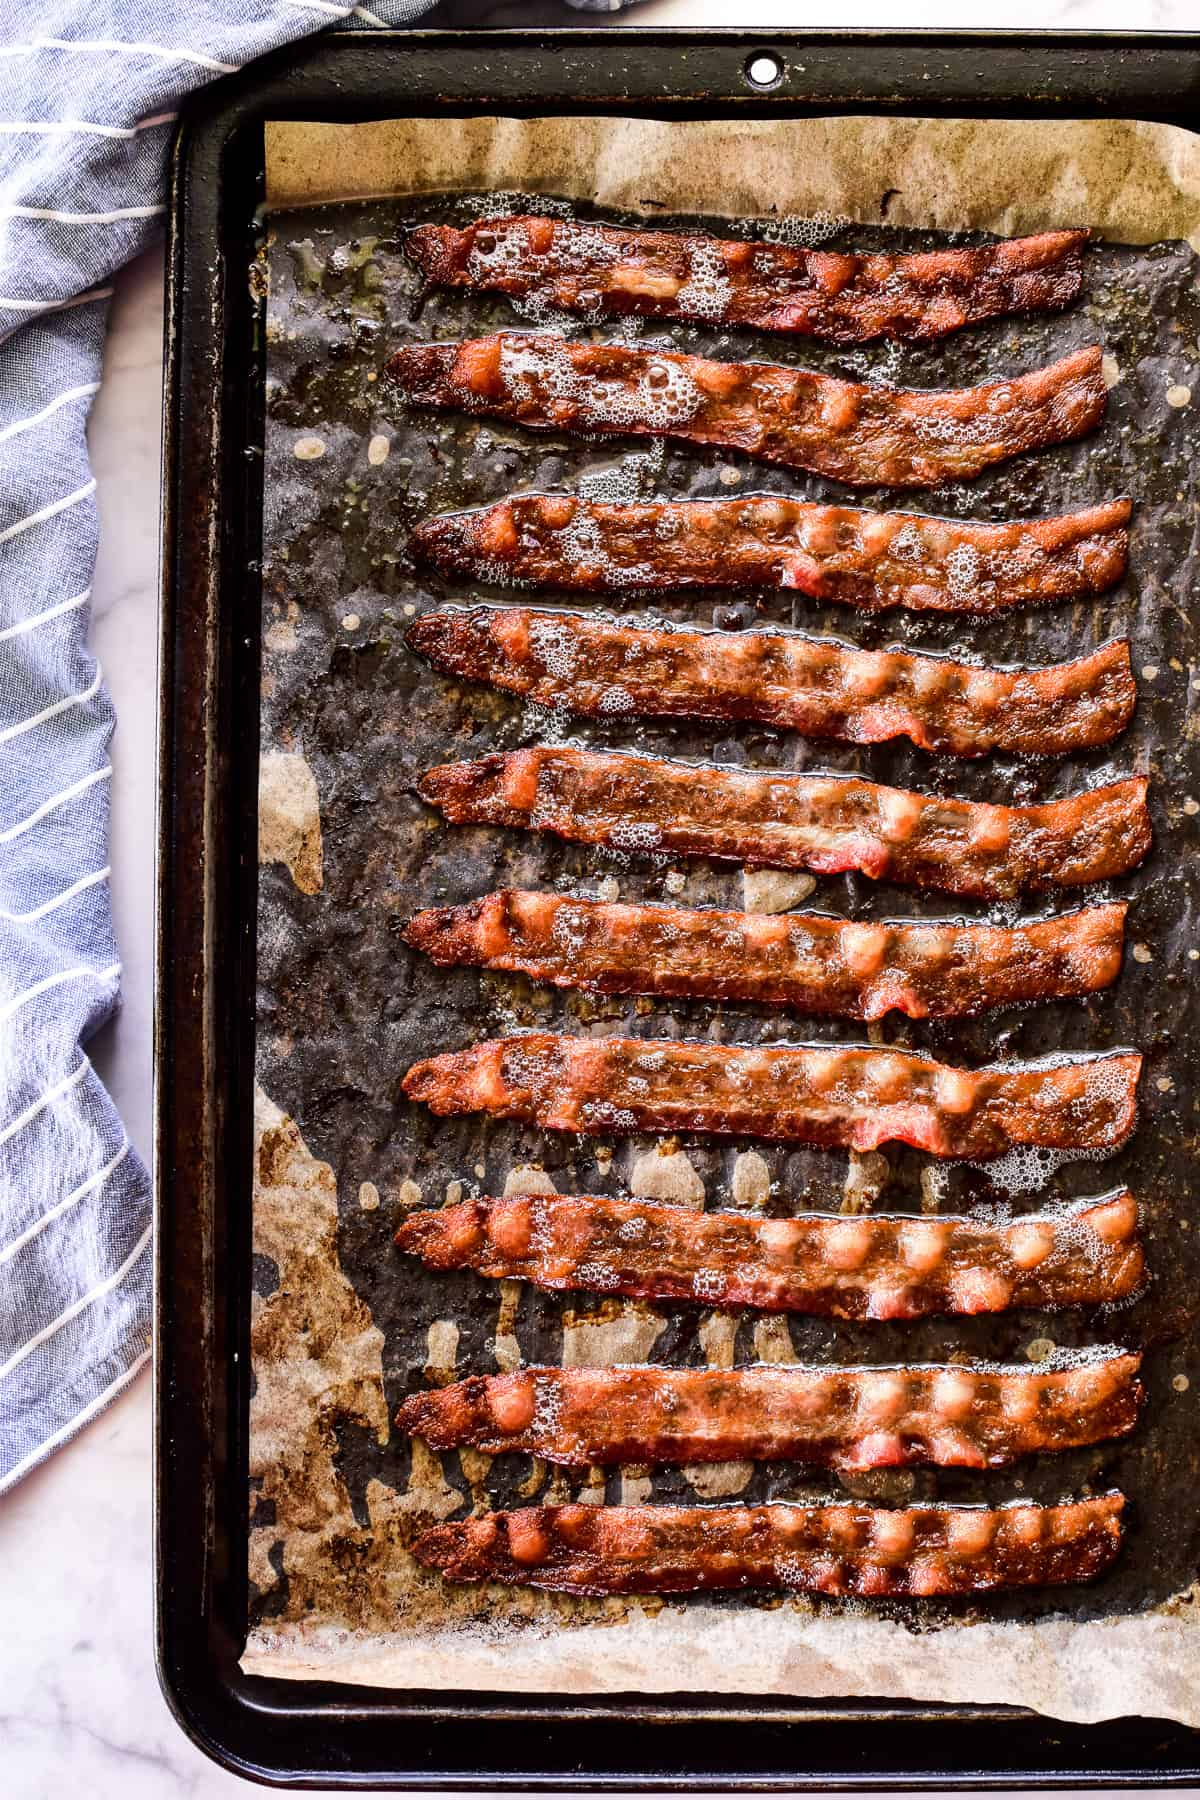 Cooked bacon on baking sheet with parchment paper